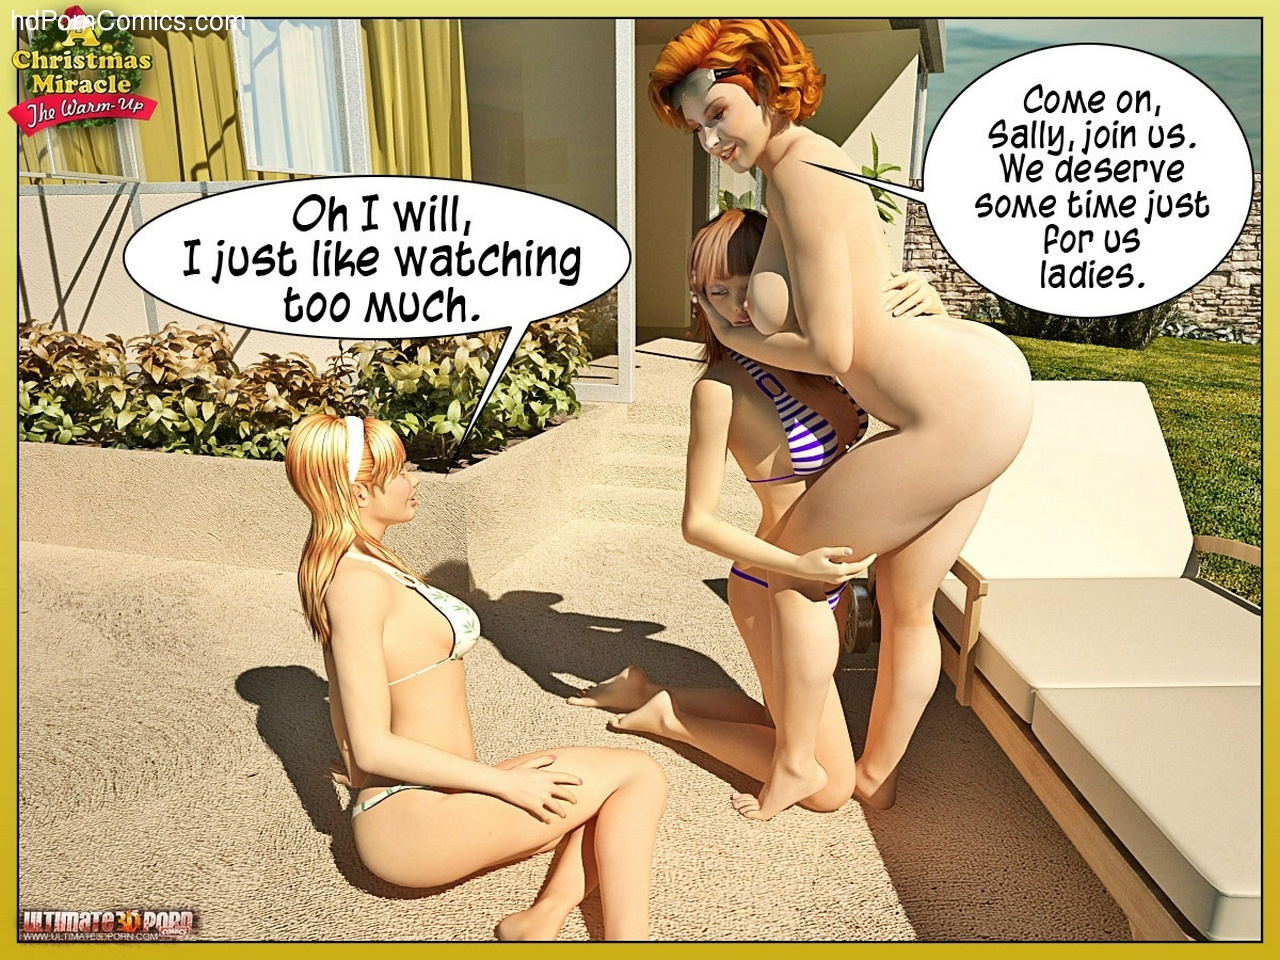 A Christmas Miracle 1 - The Warm Up 17 free sex comic